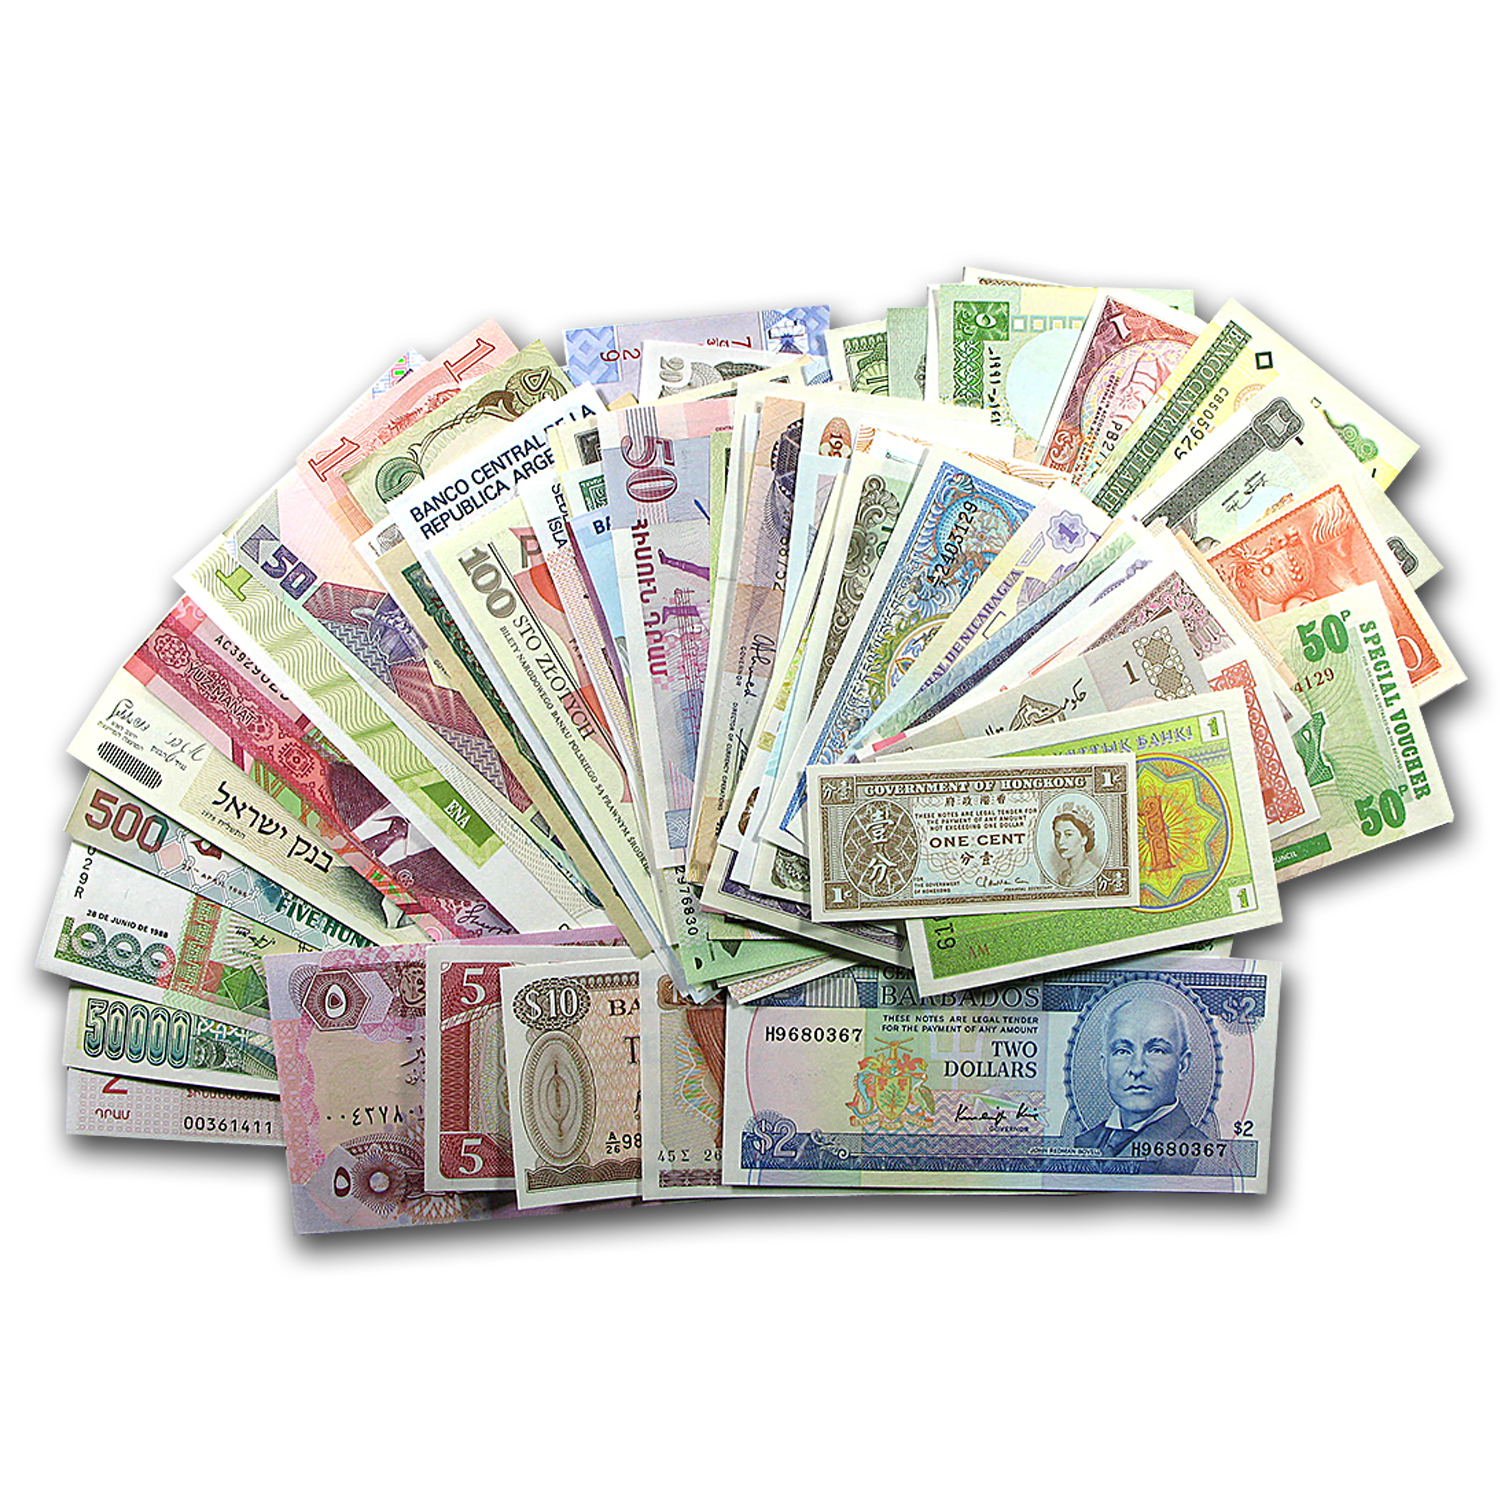 100 Bank Notes from 100 Countries (Uncirculated)